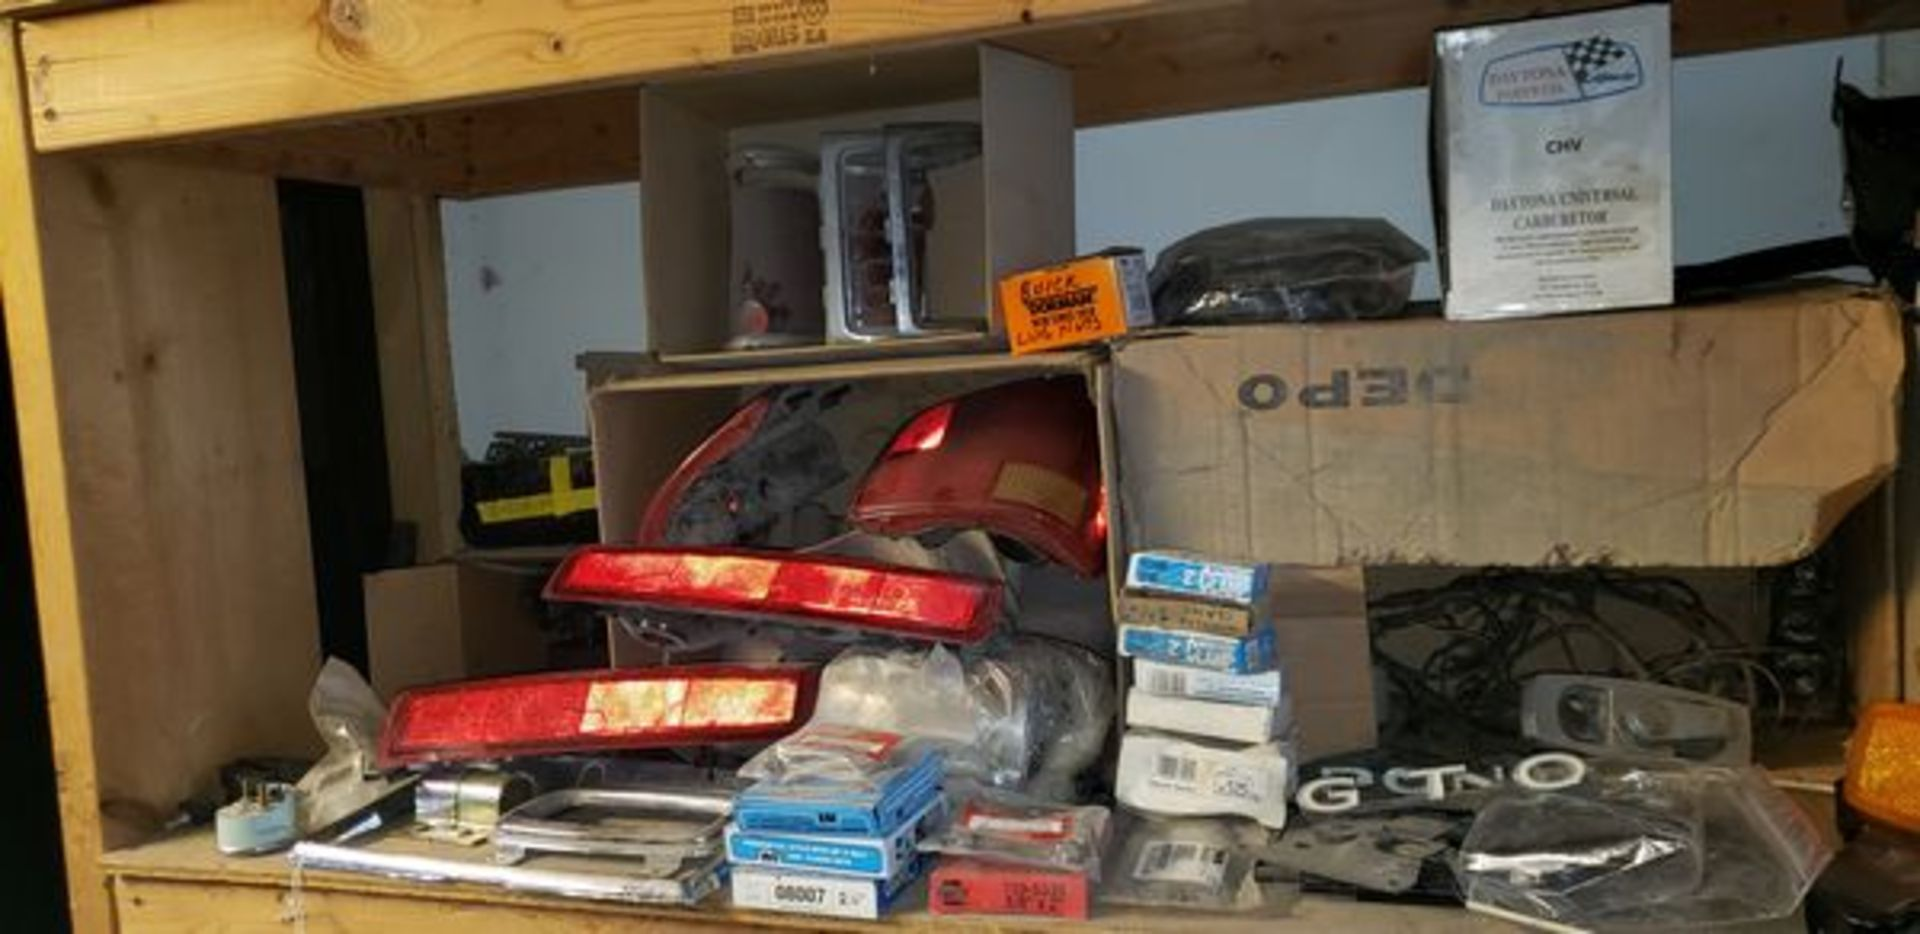 LOT OF ASSORTED CAR PARTS ON 3 SHELVES AND FLOOR - Image 6 of 12